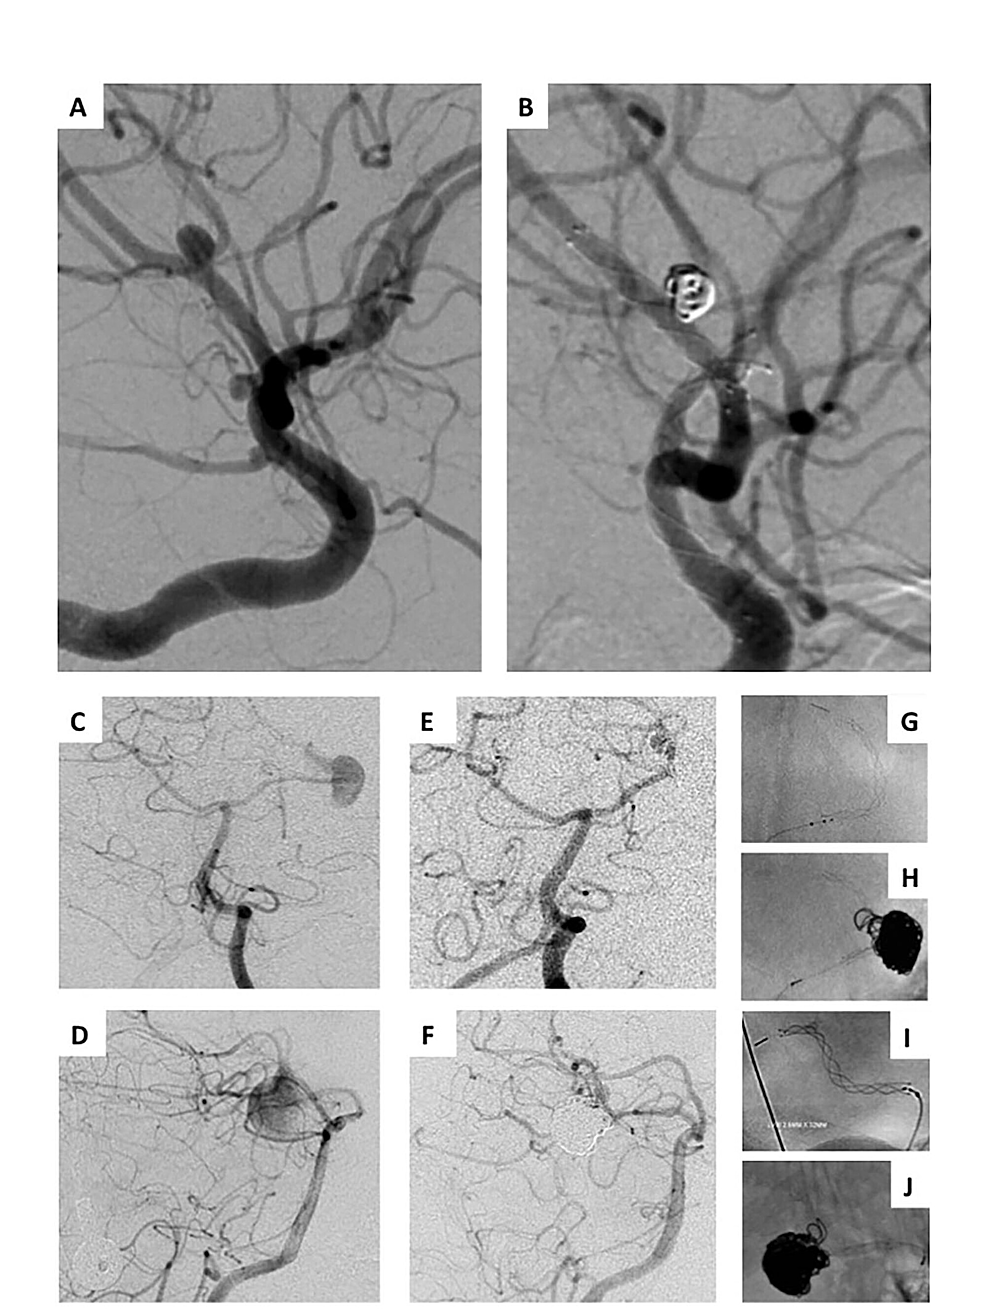 Stent-assisted-coiling-and-flow-diversion-with-LVIS-Jr.